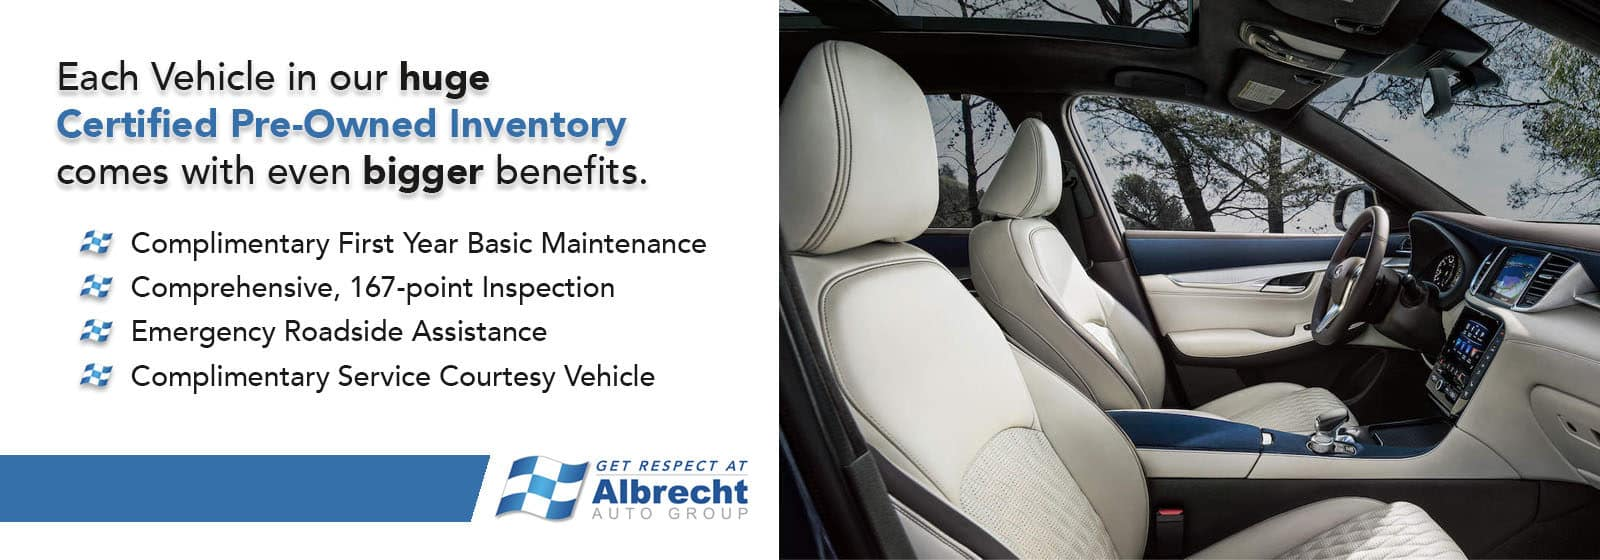 Certified Pre-Owned Benefits